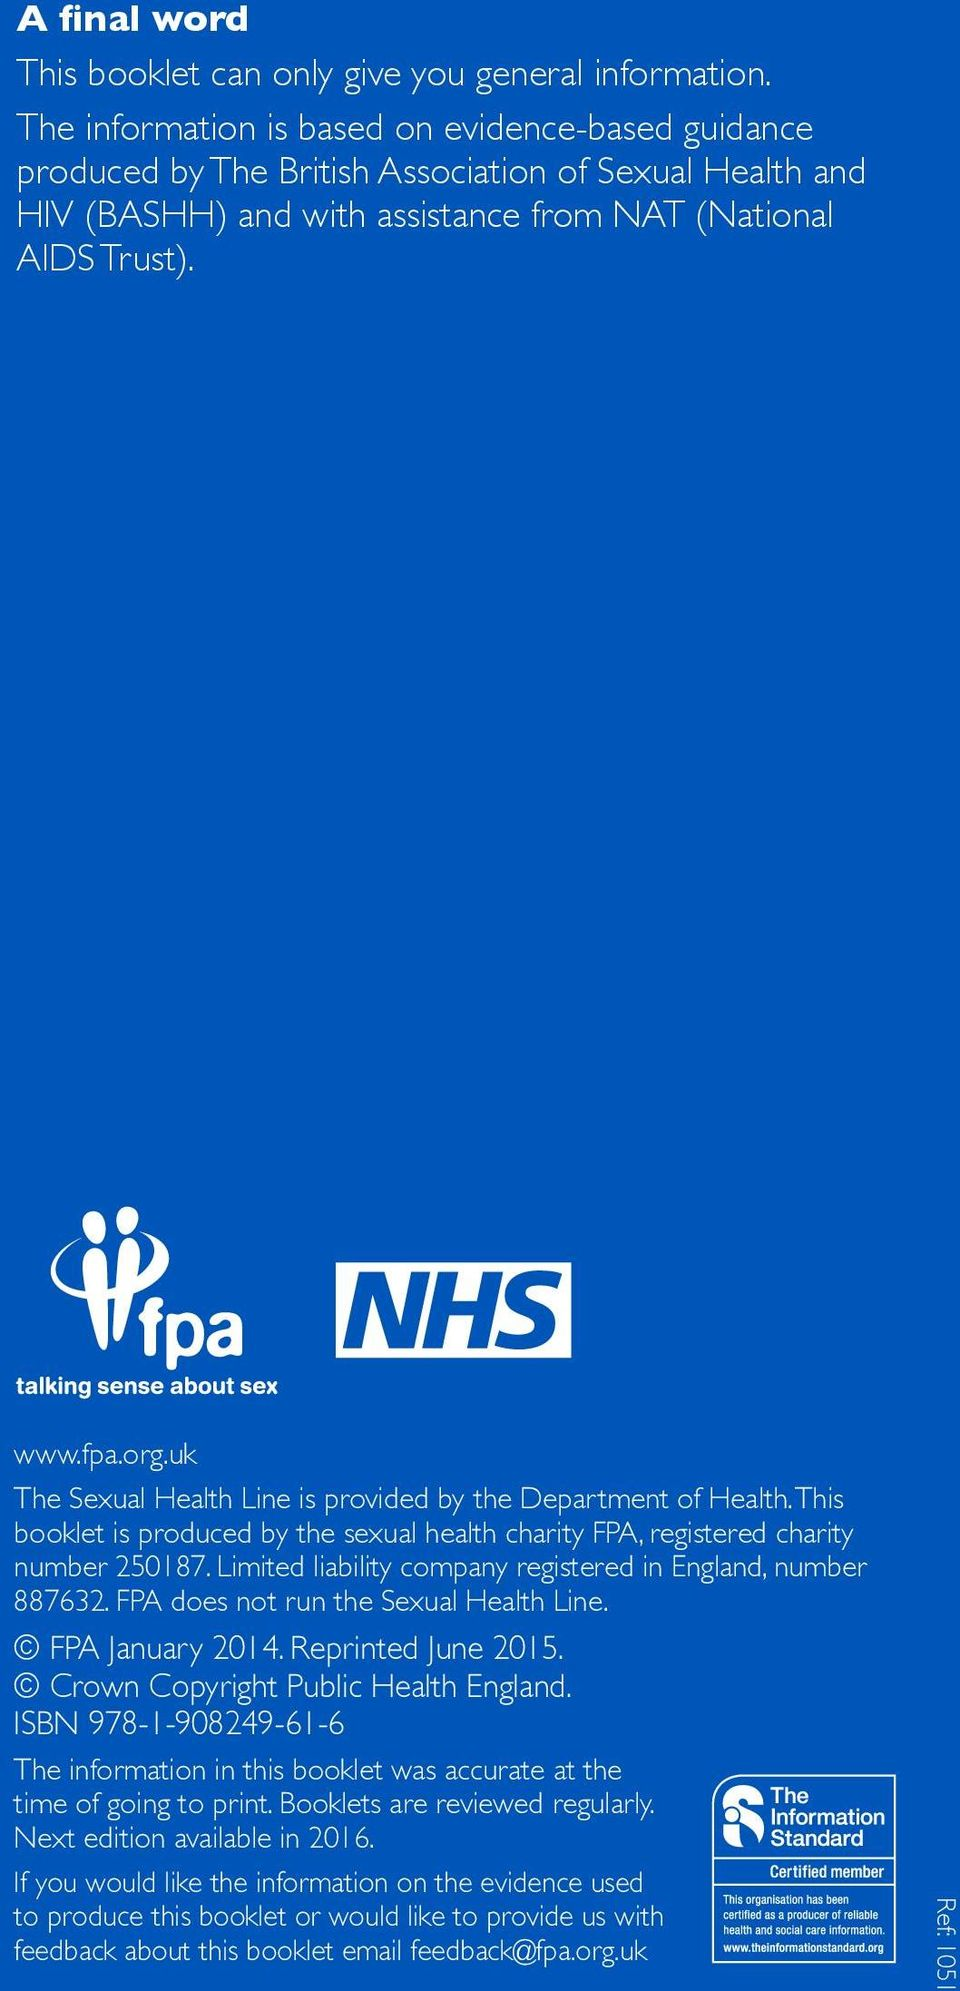 uk The Sexual Health Line is provided by the Department of Health. This booklet is produced by the sexual health charity FPA, registered charity number 250187.